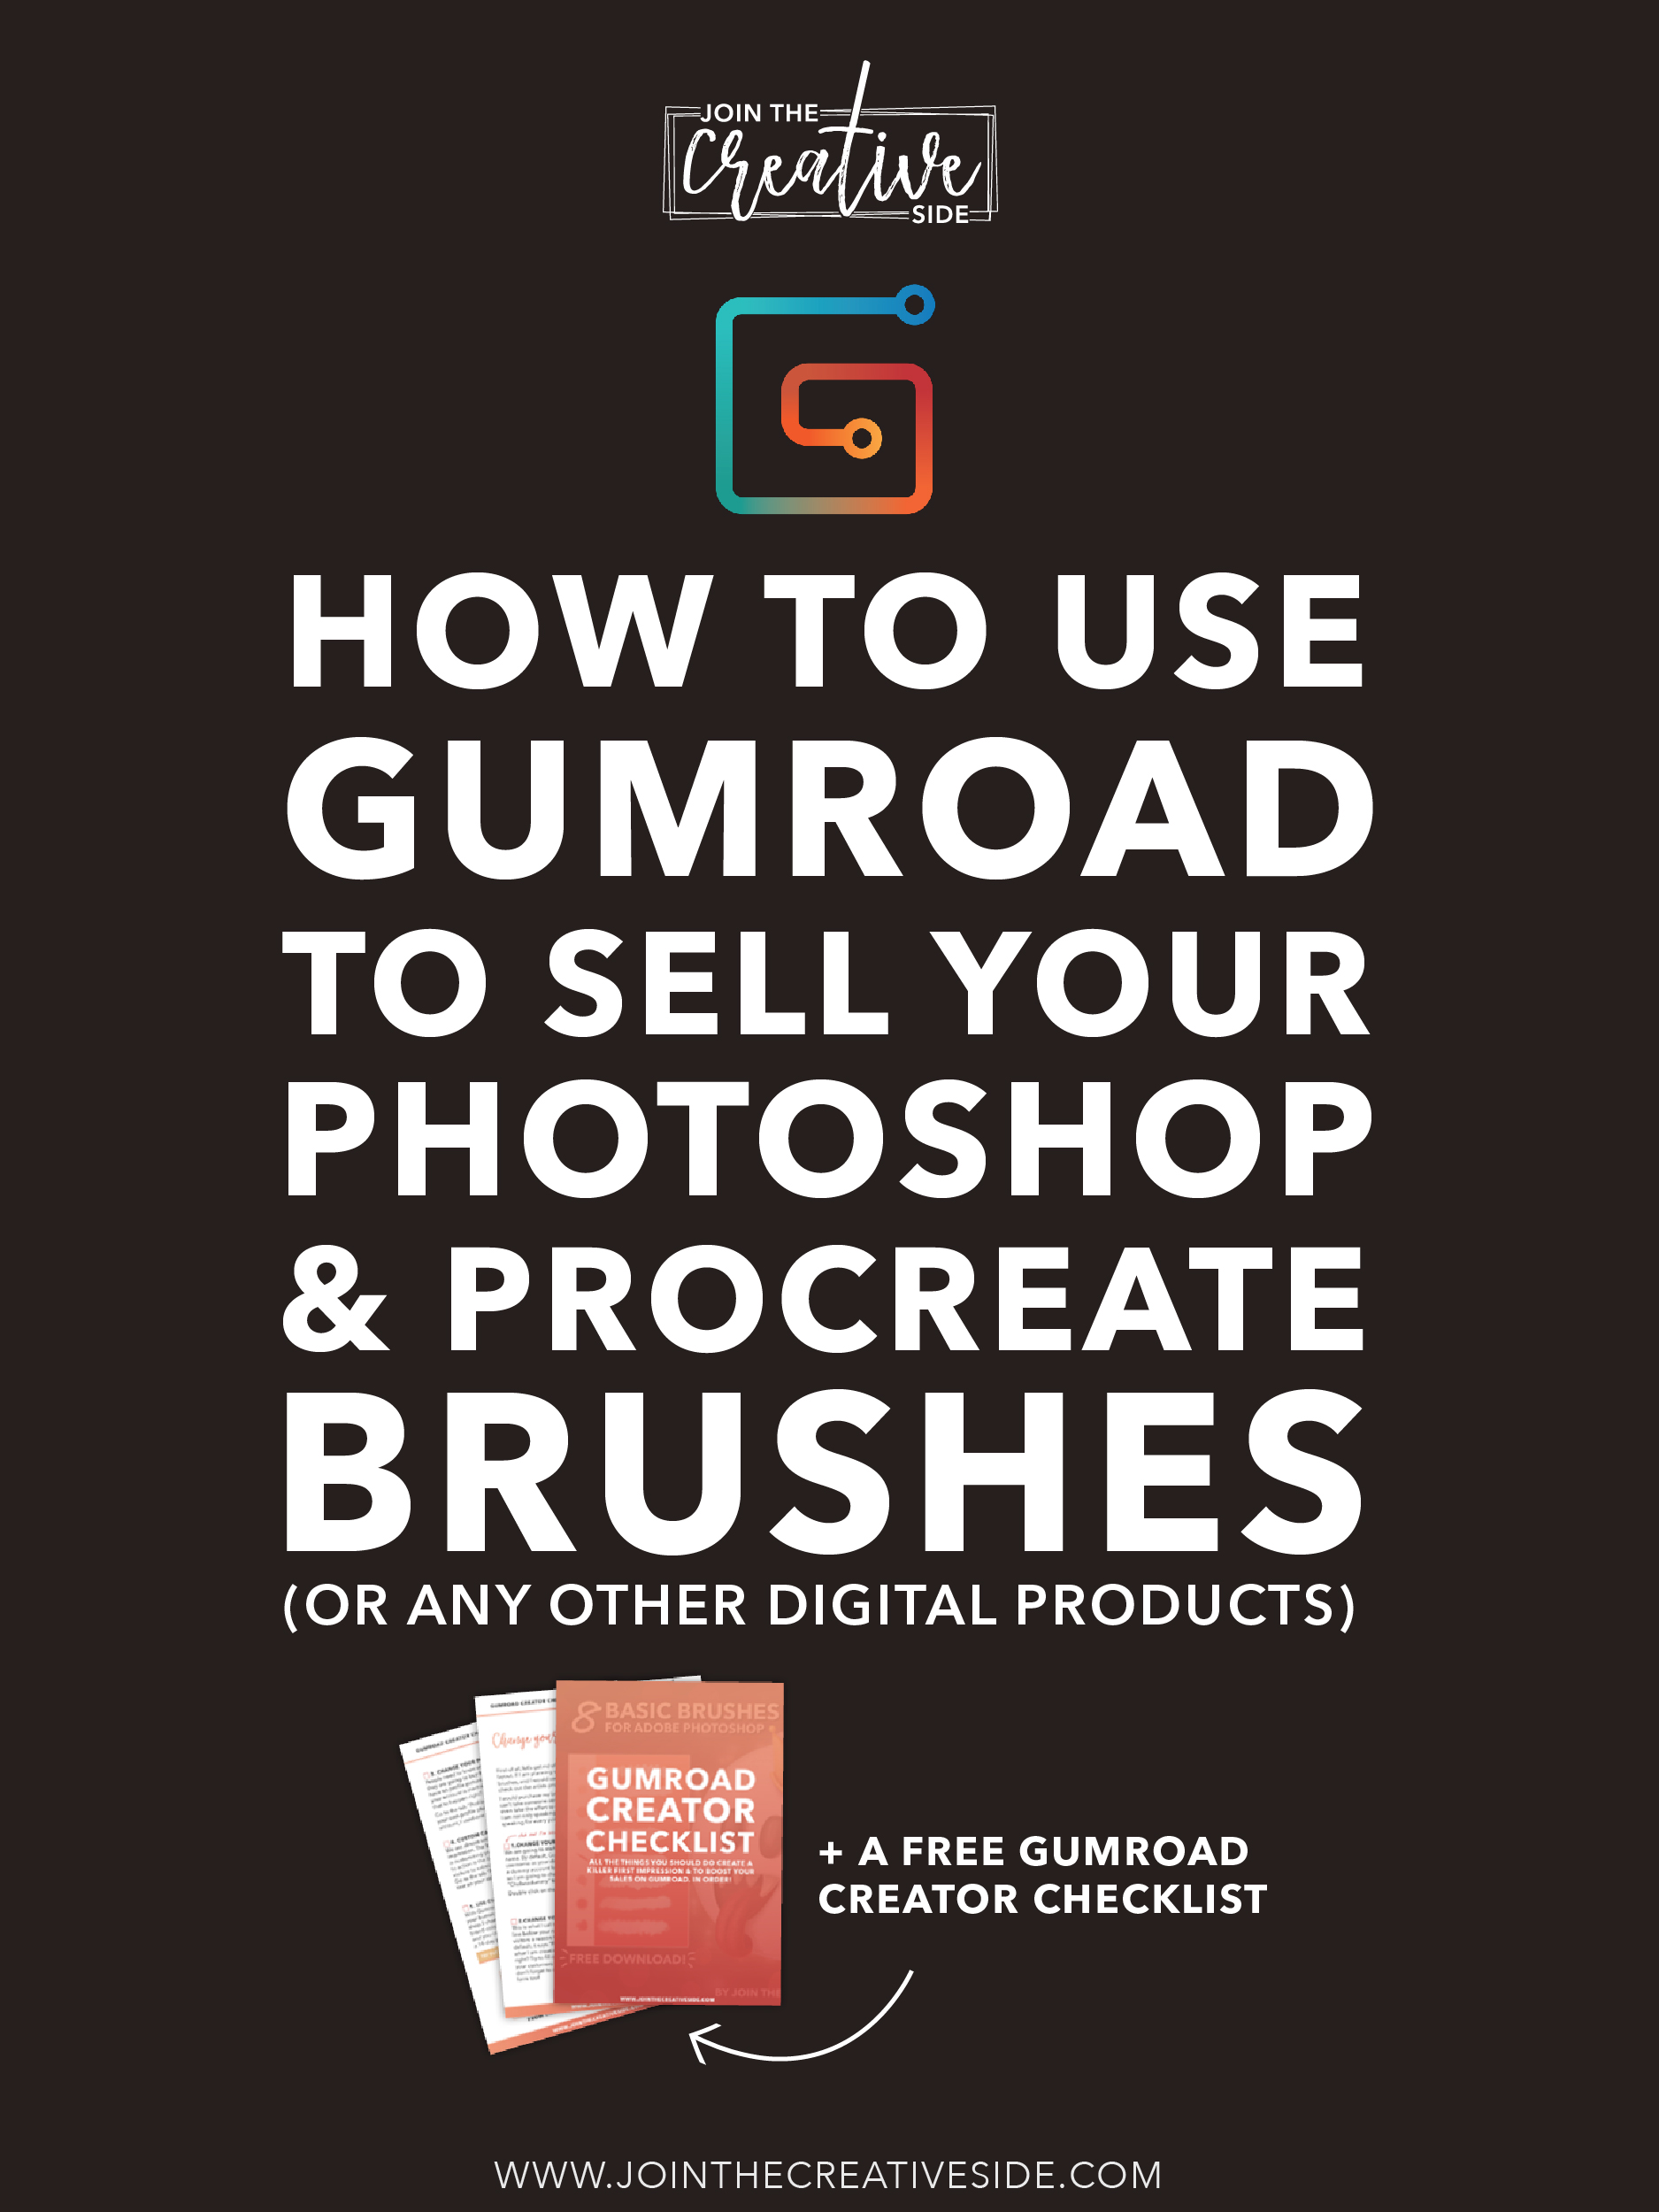 Ever thought about selling your own custom digital painting brushes or other digital products? This article is for you! I am going to show you how you can add your first product to Gumroad! Gumroad is a platform that makes it possible for artists like you to sell your products to customers with ease.  Don't forget to download your free Gumroad Creator Checklist! #gumroad #makemoneyartist #photoshopbrushes #procreatebrushes  #sellart #makemoneyonline